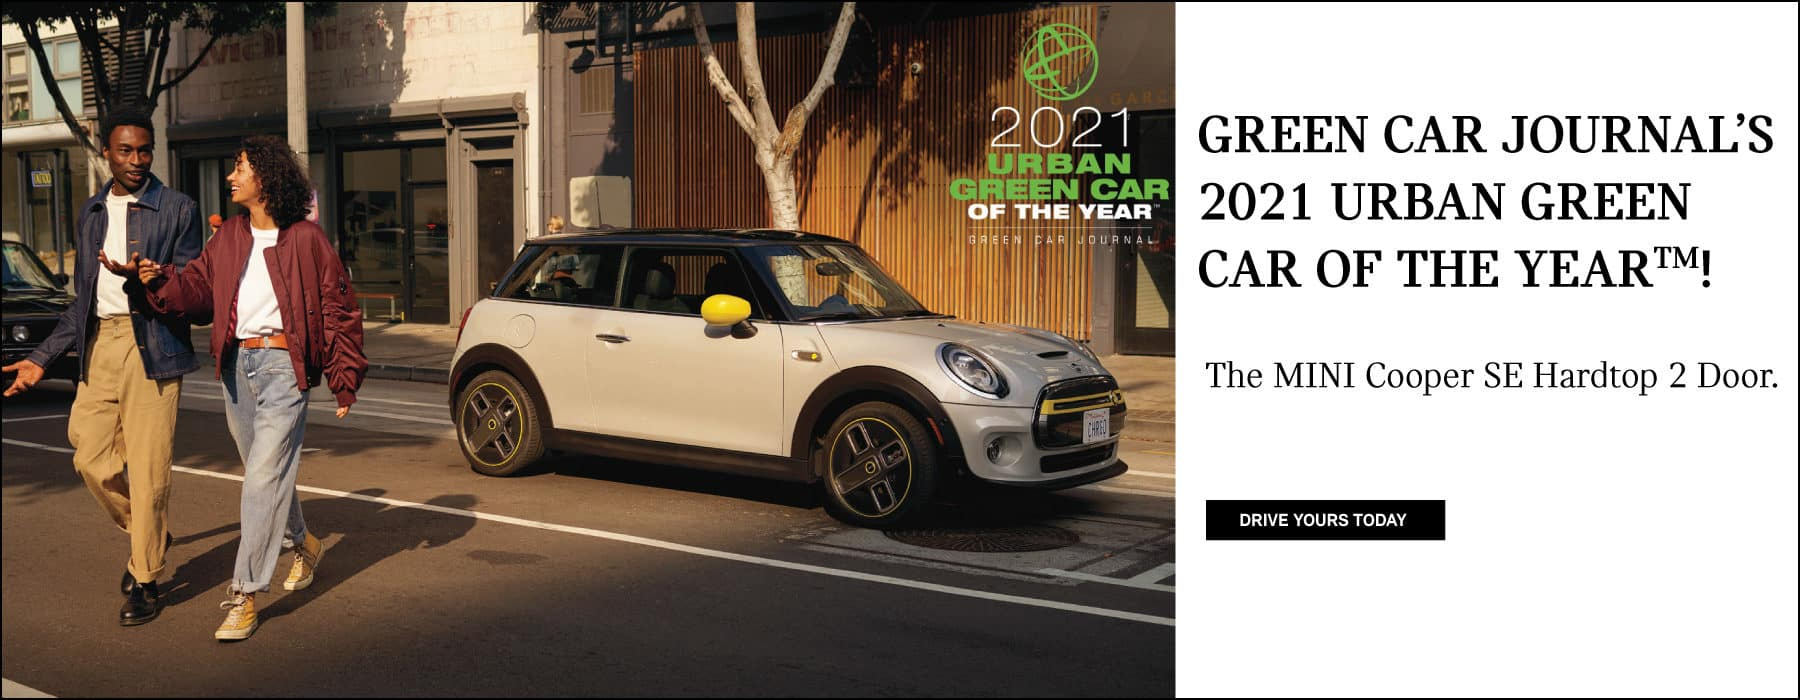 GREEN CAR JOURNALS 2021 URBAN GREEN CAR OF THE YEAR. THE MINI COOPER SE HARDTOP 2 DOOR. DRIVE YOUR TODAY BUTTON.